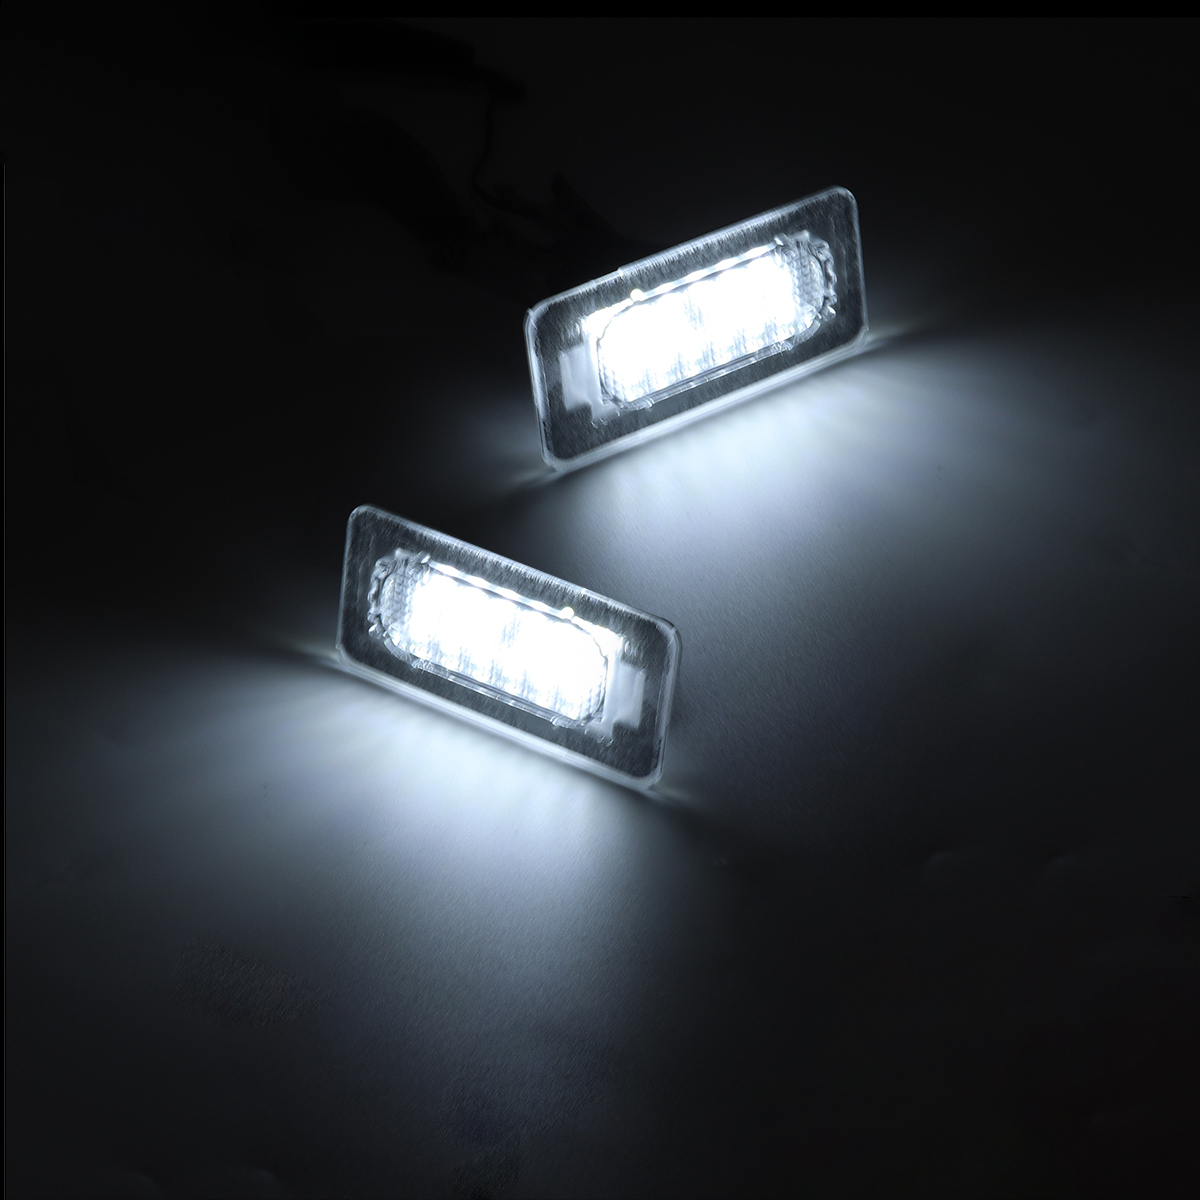 2Pcs Car SMD White LED Lights License Plate Lamps 6000K For Toyota Corolla 2014-2019